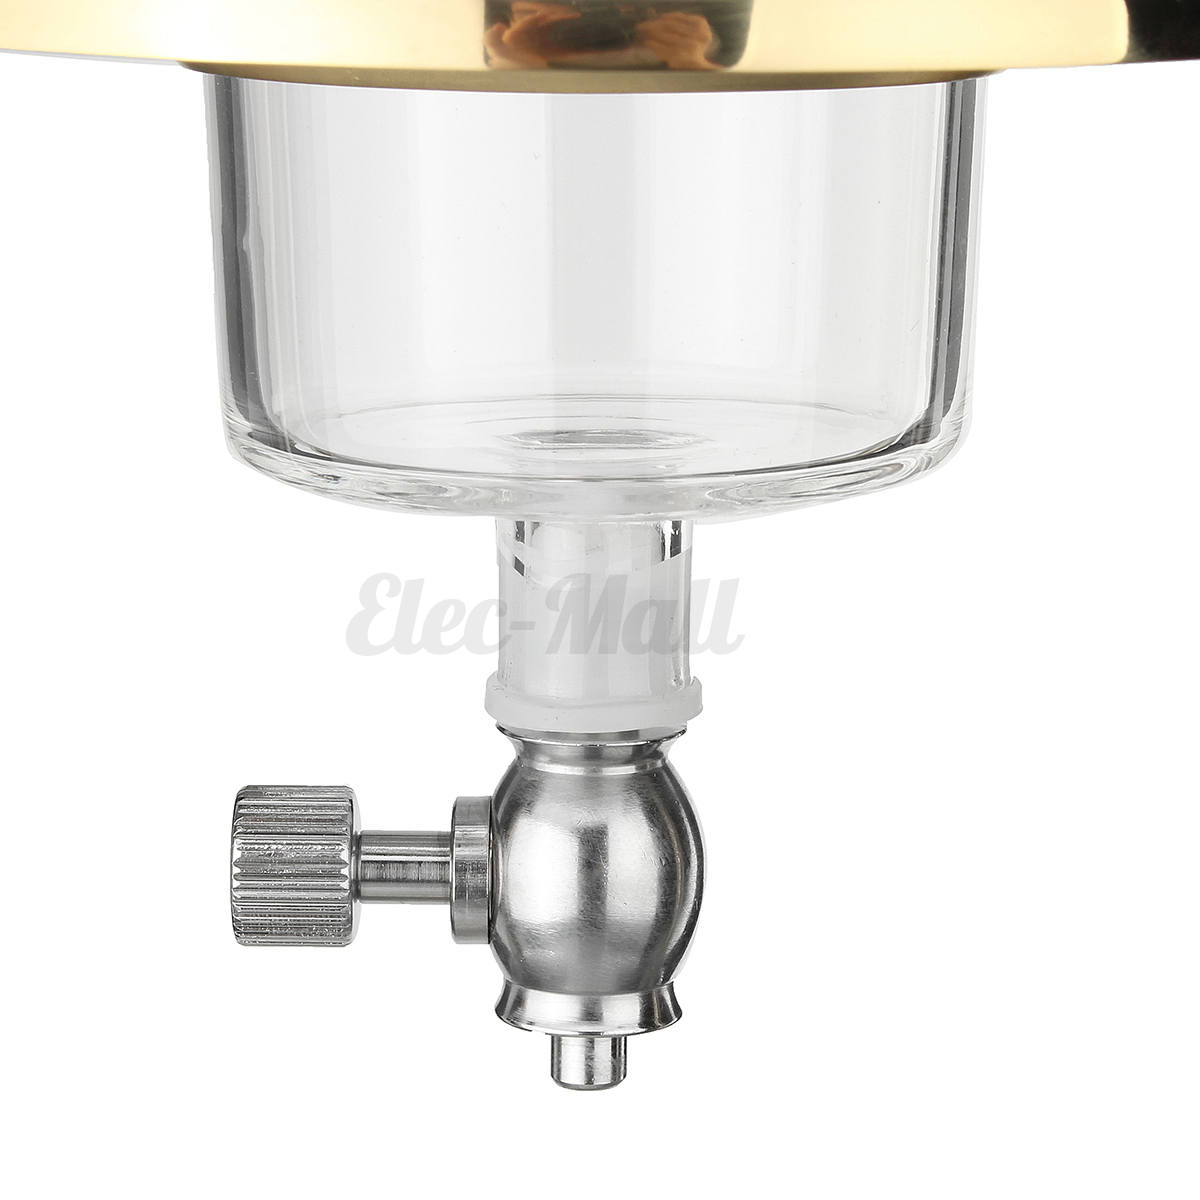 2 Color Dutch Coffee Cold Drip Water Drip Coffee Maker Serve For 8cups 600ml New eBay